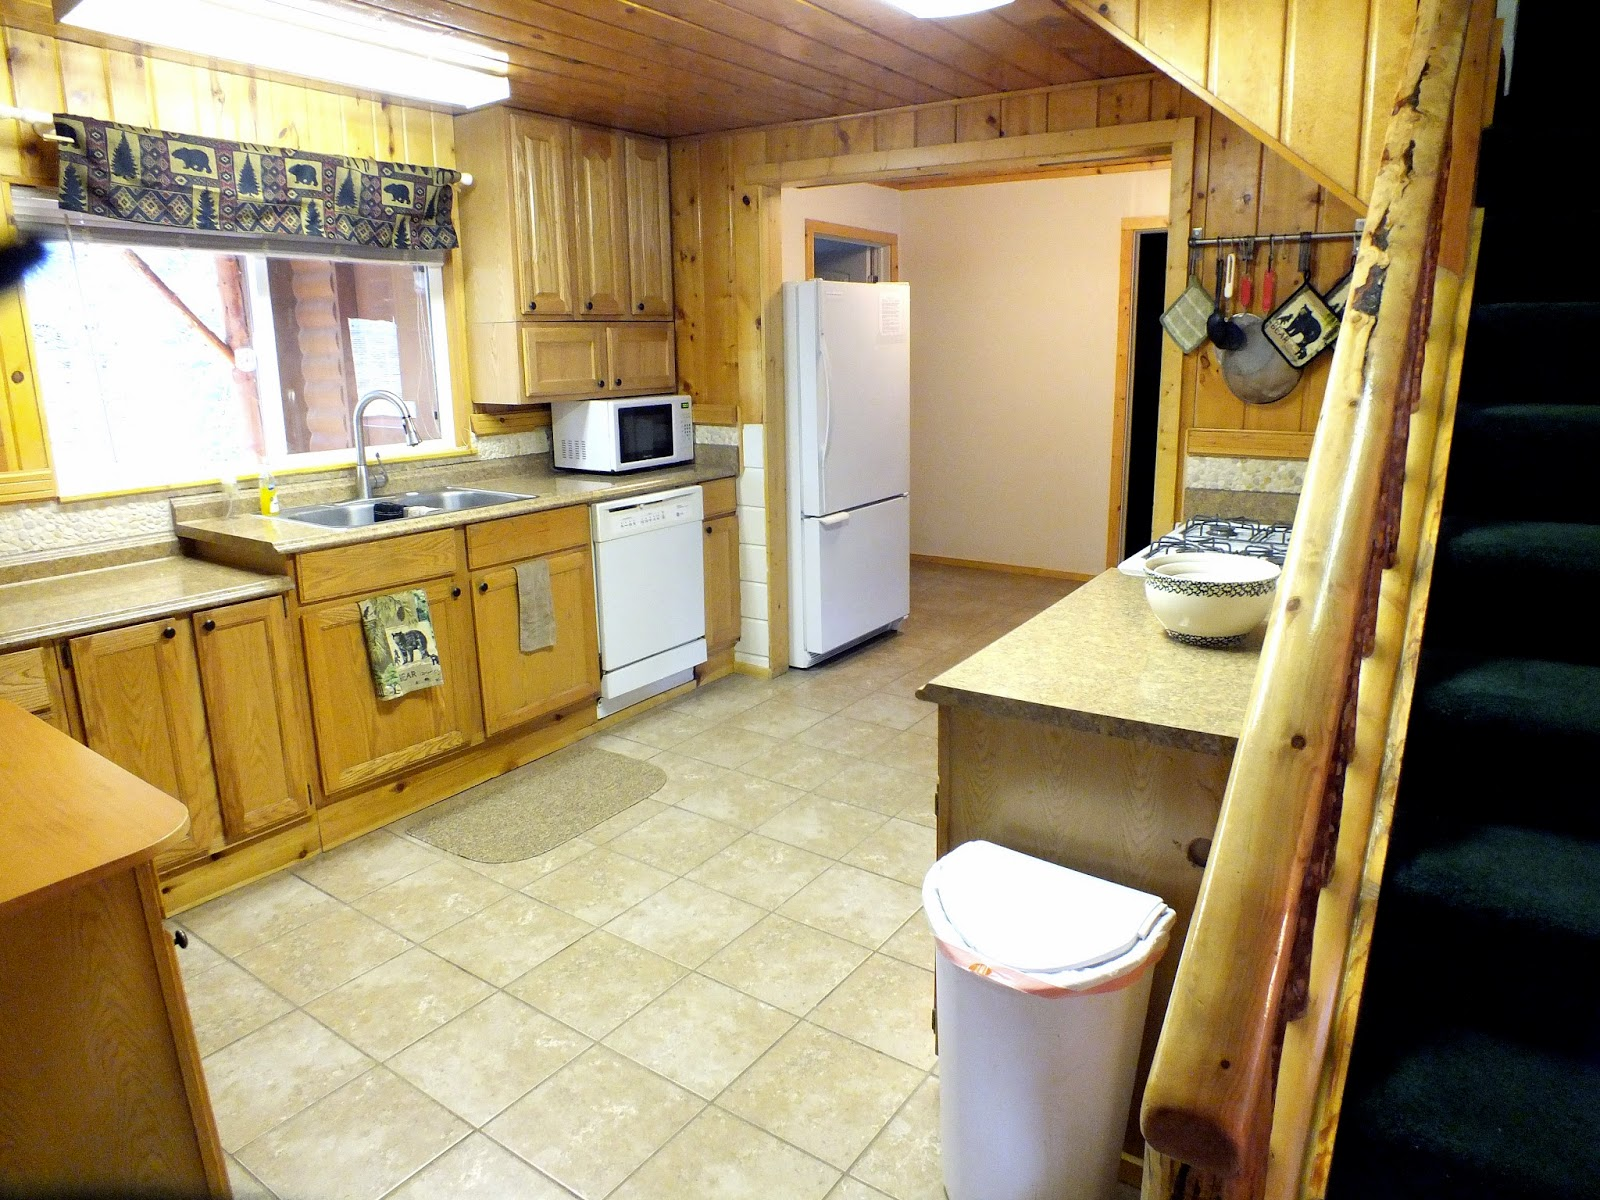 lodges rentals fresh lodging cabin for insider grant yellowstone season of near village park cabins island idaho national rent best revamped